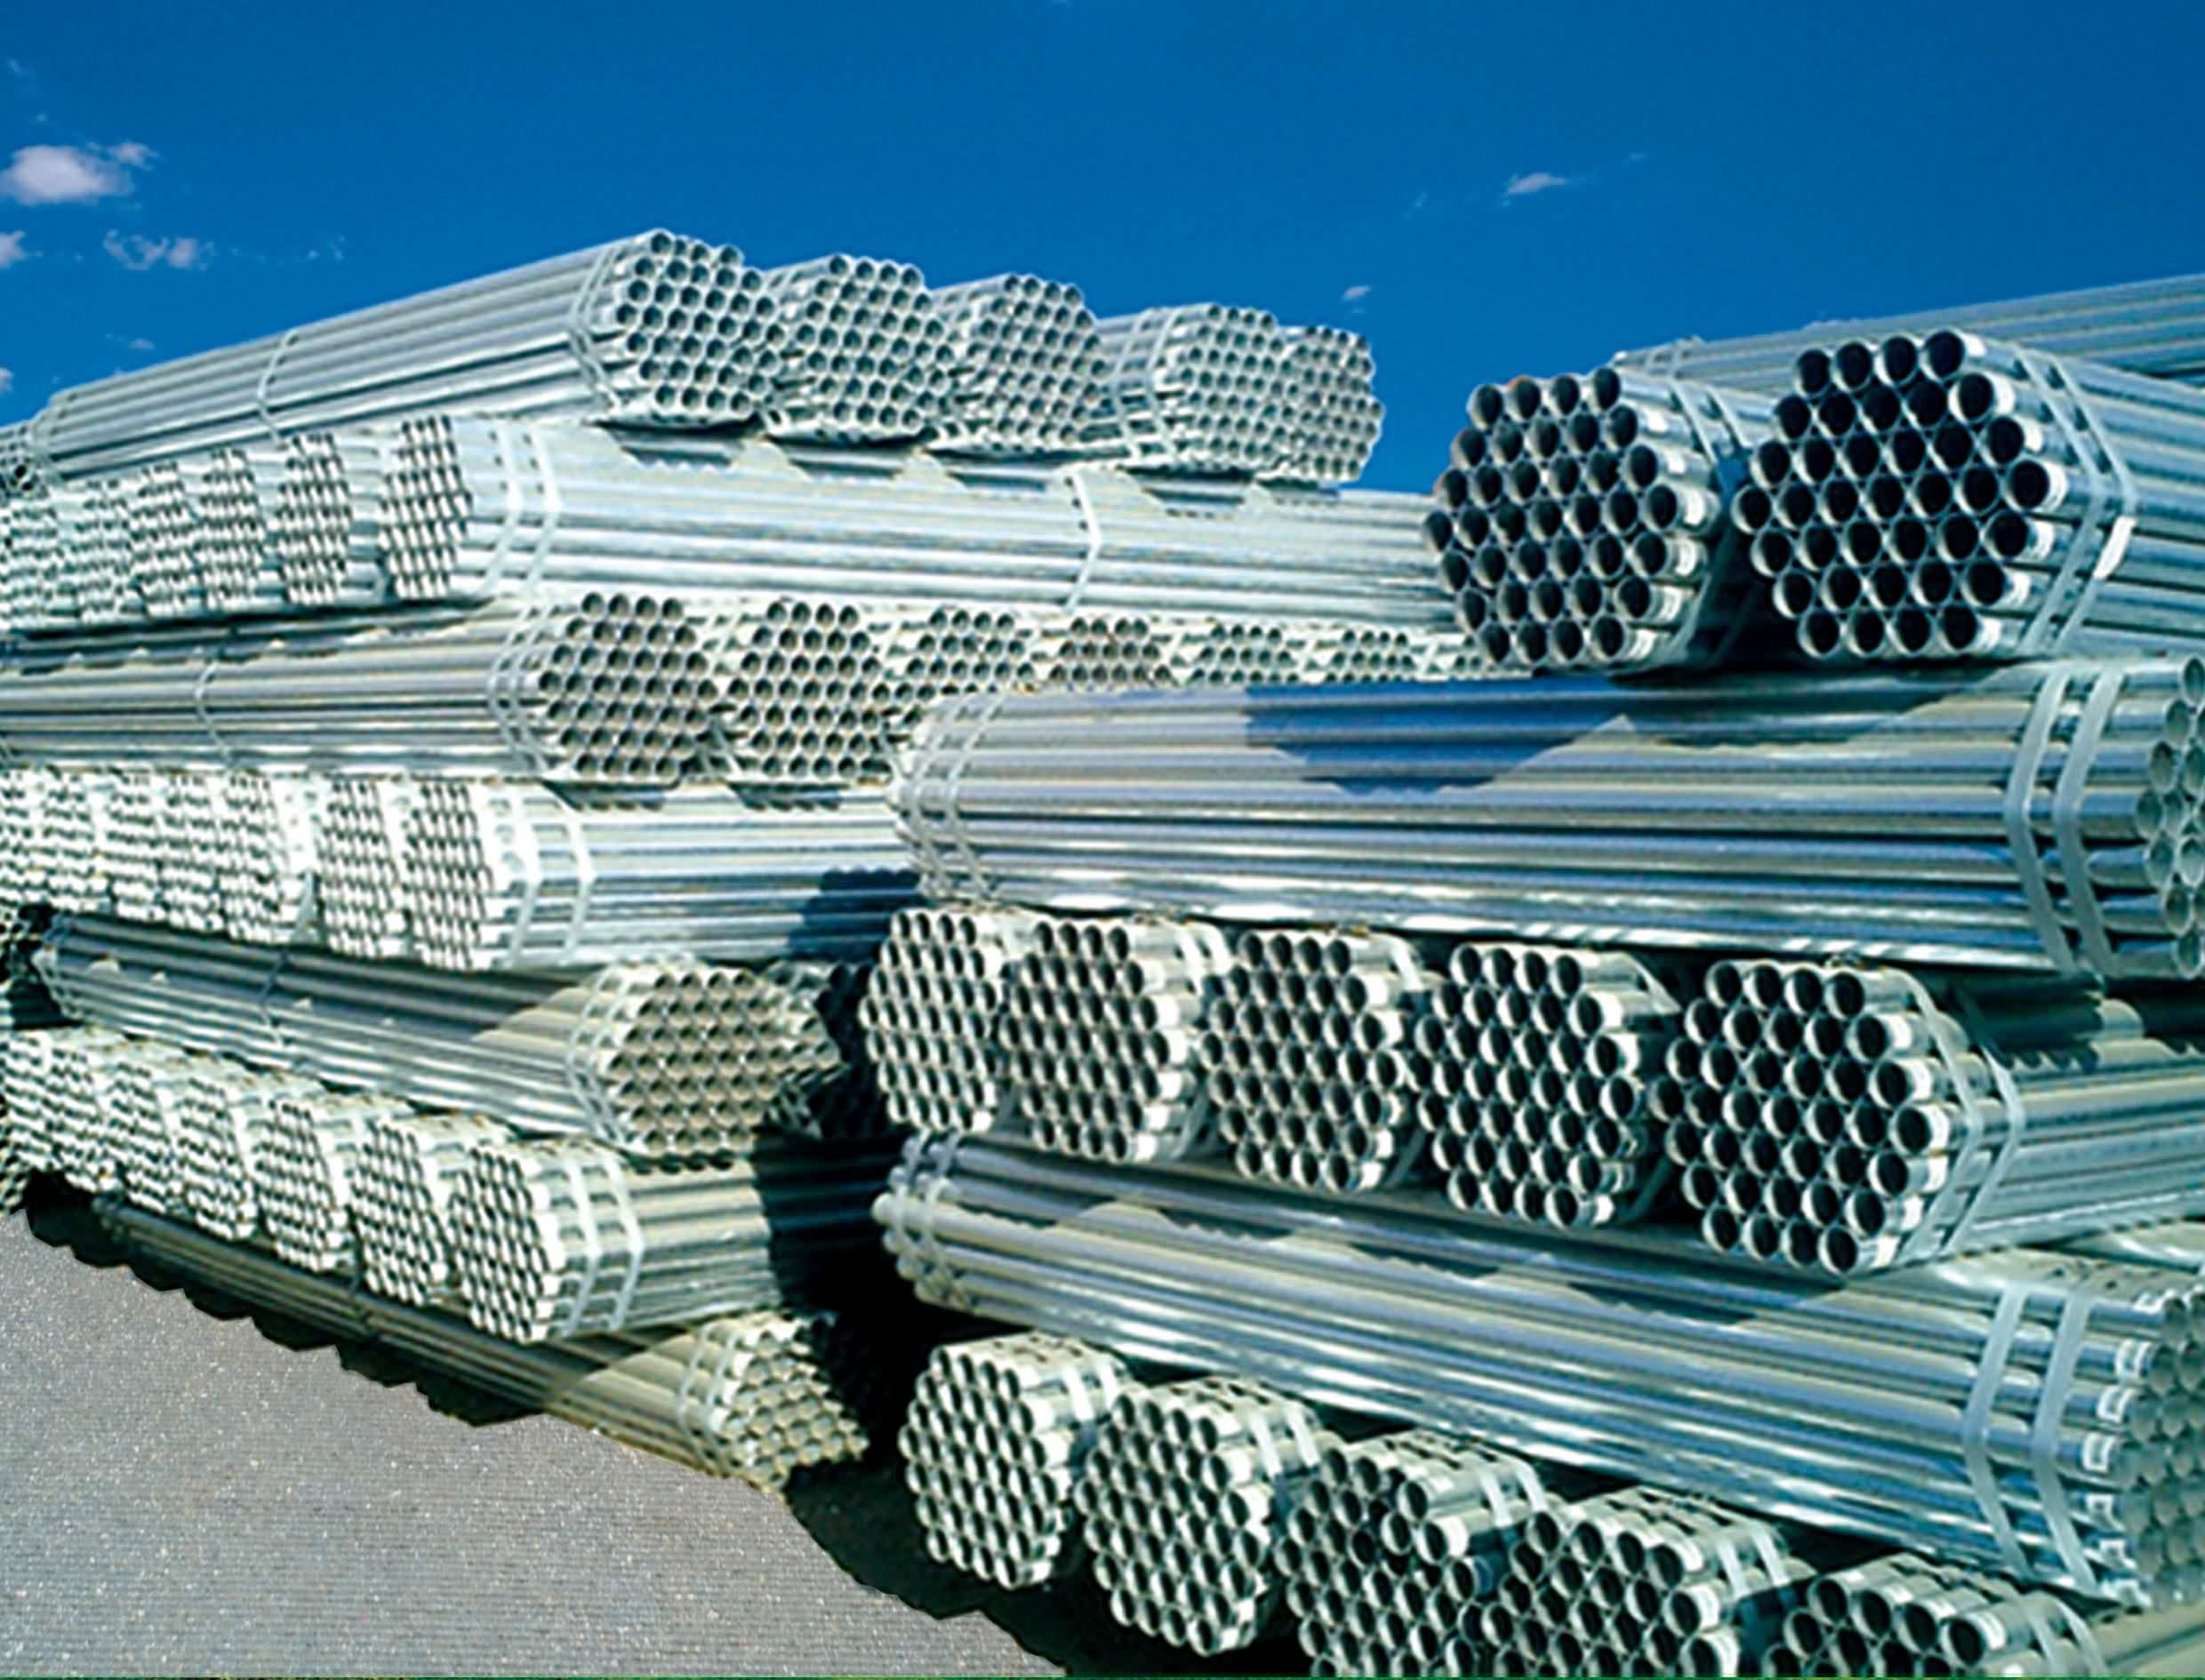 Hot-dipped and Pre-galvanized steel pipes